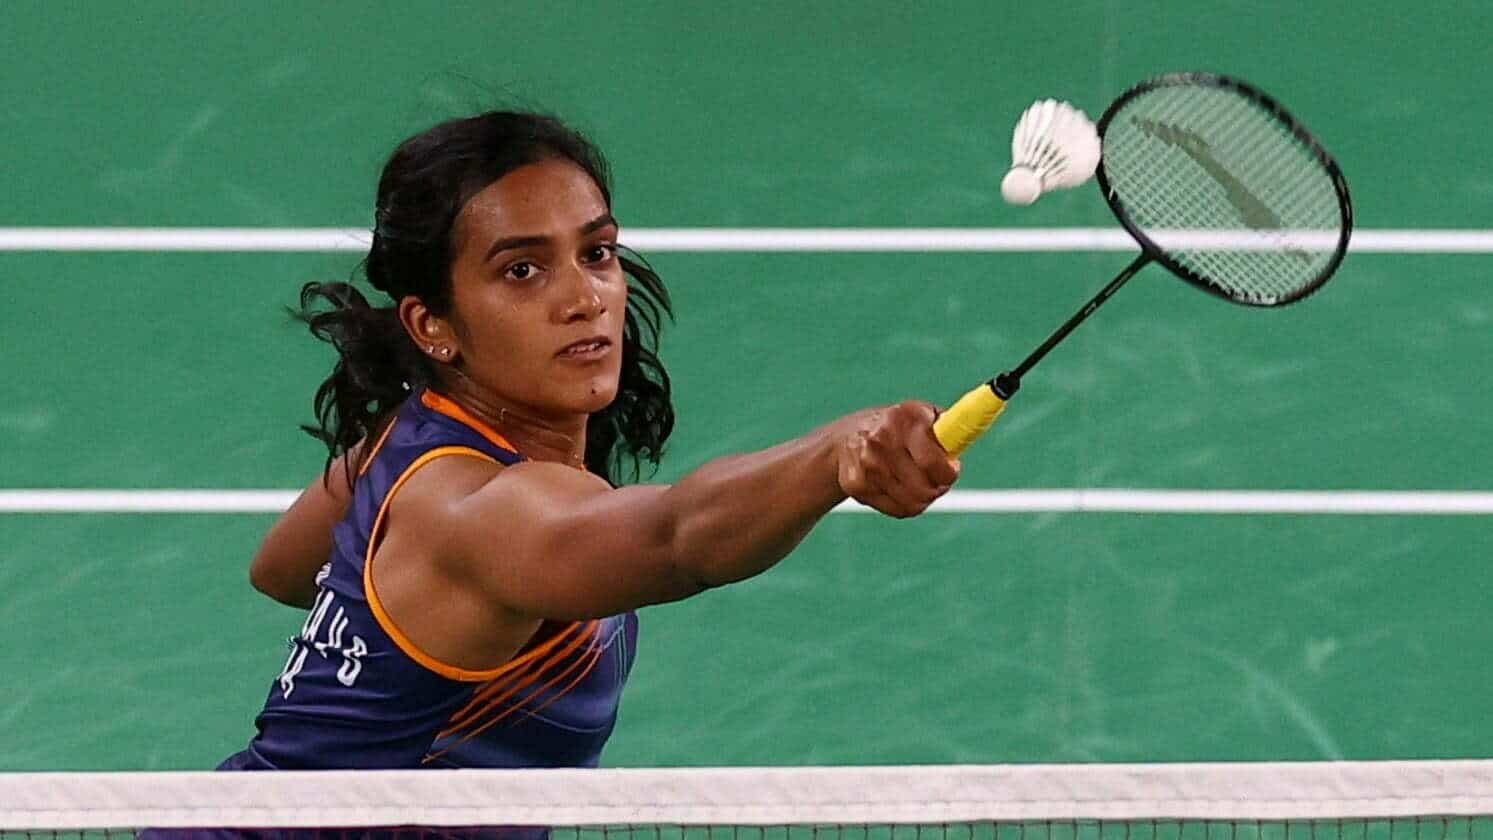 PV Sindhu onto the quarter-finals at the Tokyo Olympics